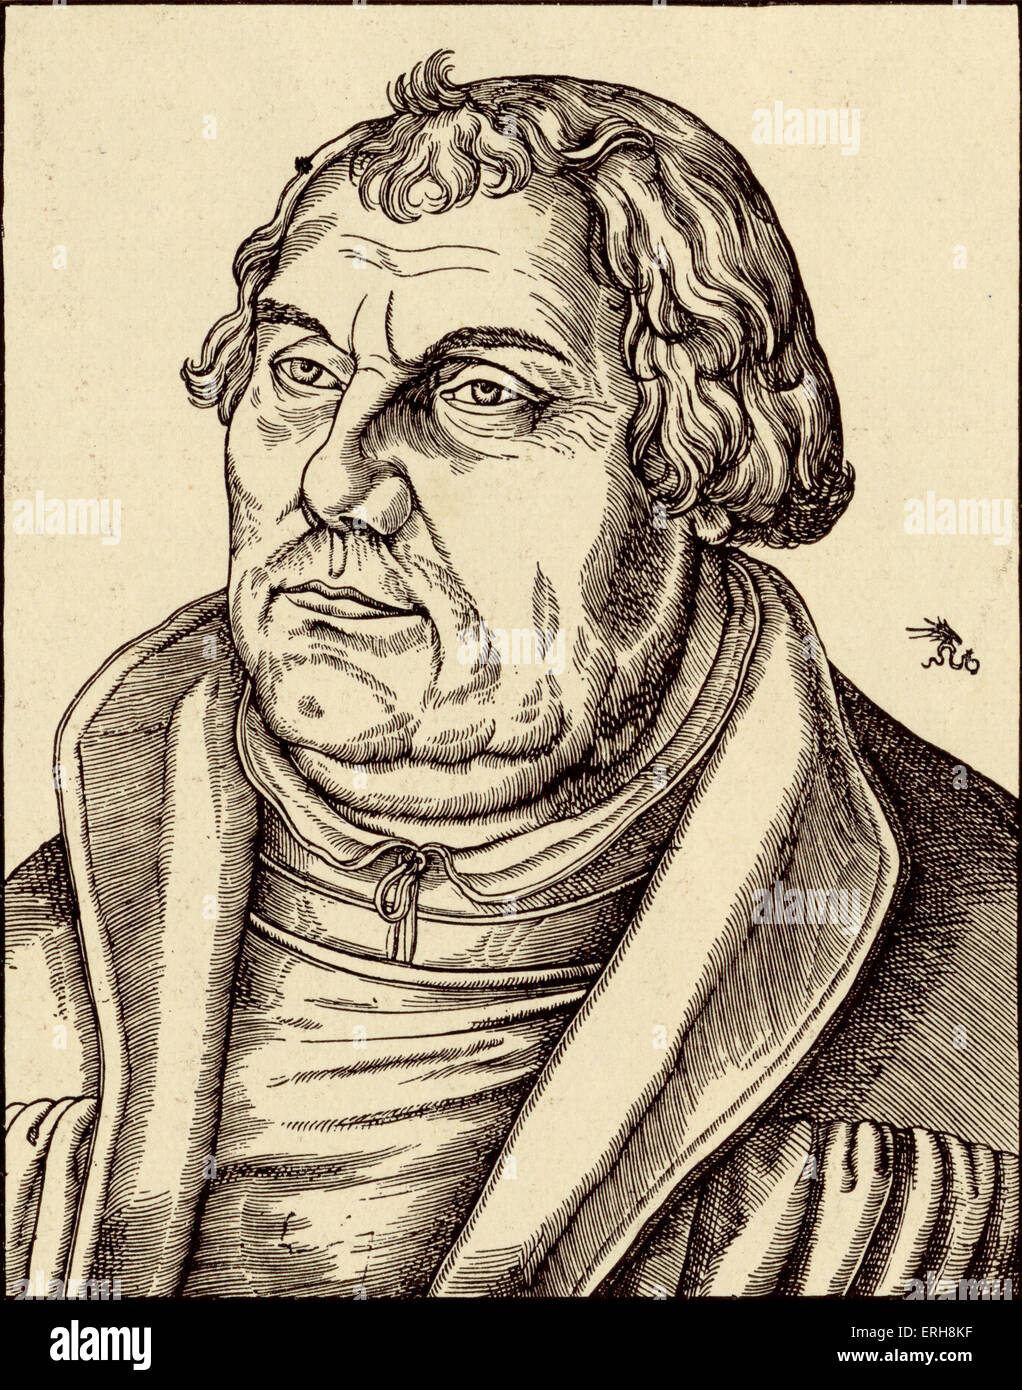 Martin Luther by Lucas Cranach. Church reformer. 1483-1525 - Stock Image